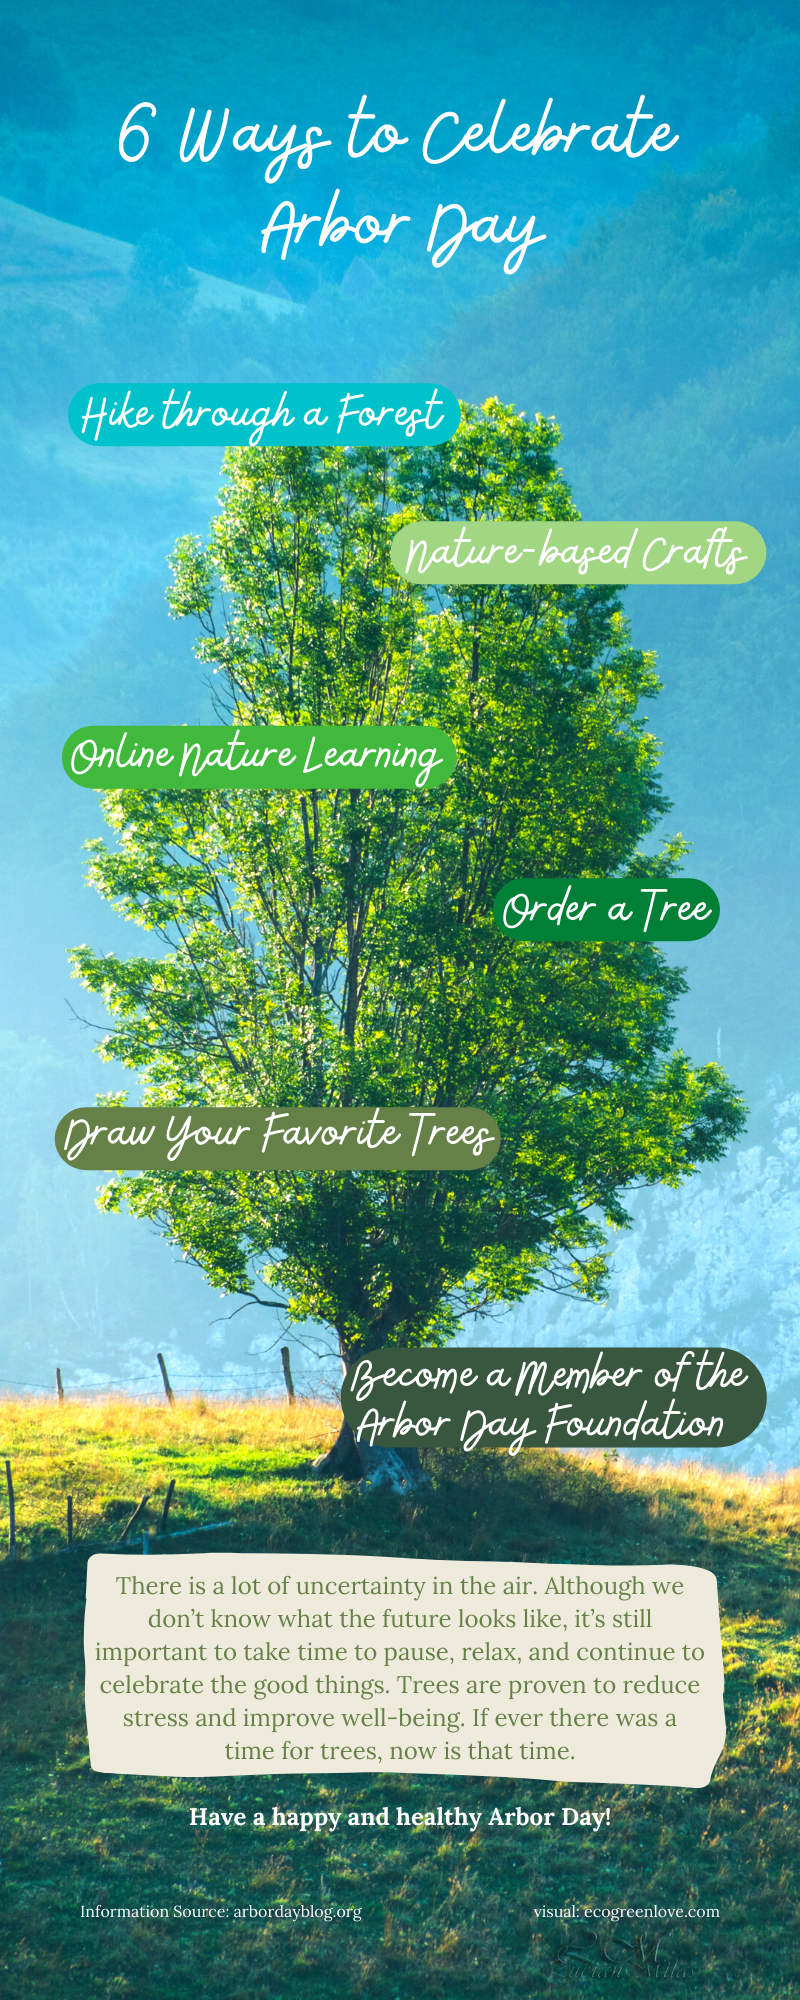 6 Ways to Celebrate Arbor Day | ecogreenlove